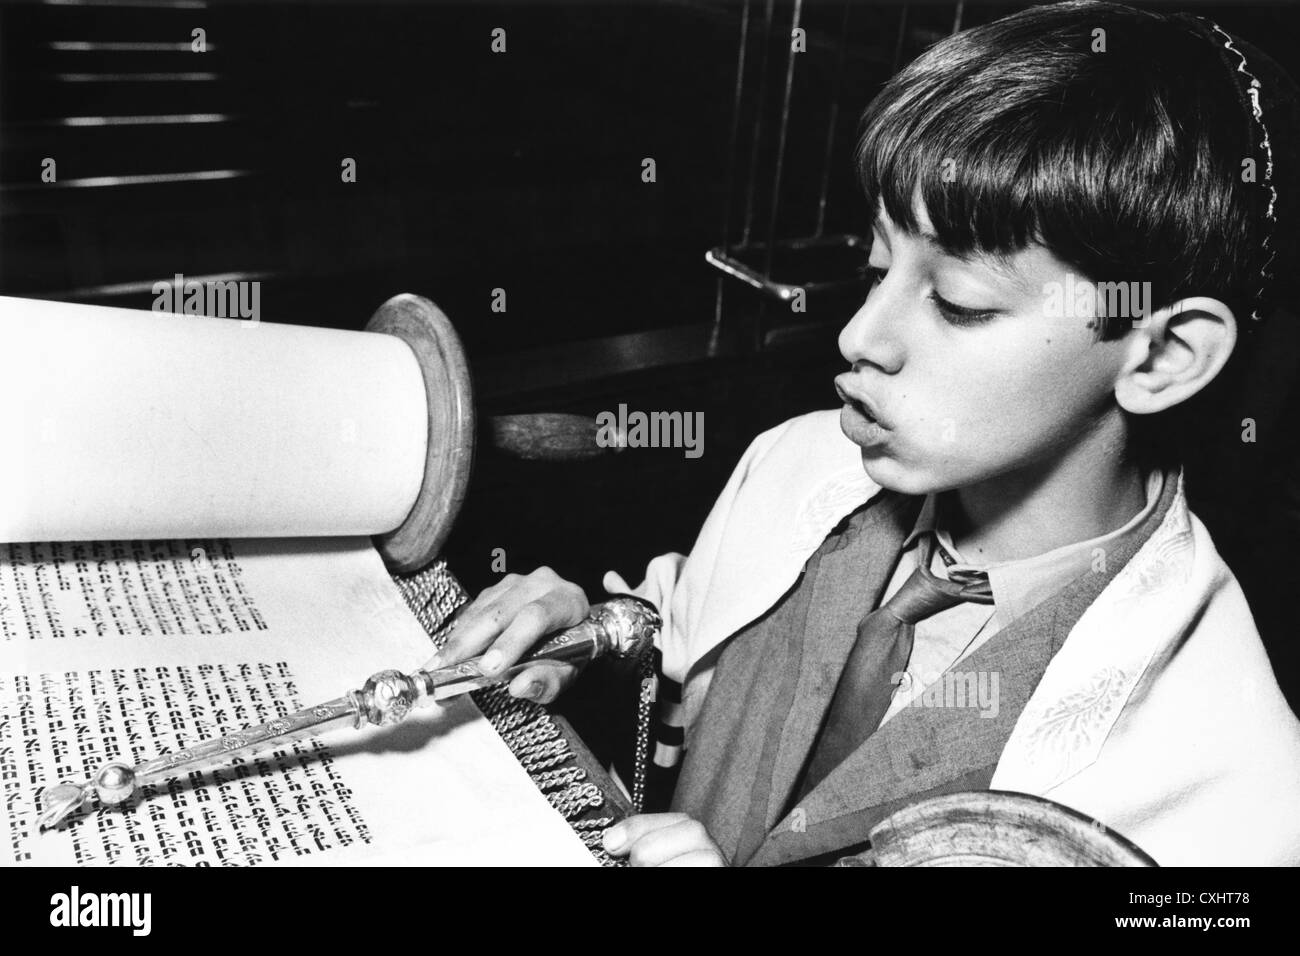 young-jewish-boy-reading-torah-for-his-bar-mitzvah-using-silver-pointer-CXHT78.jpg